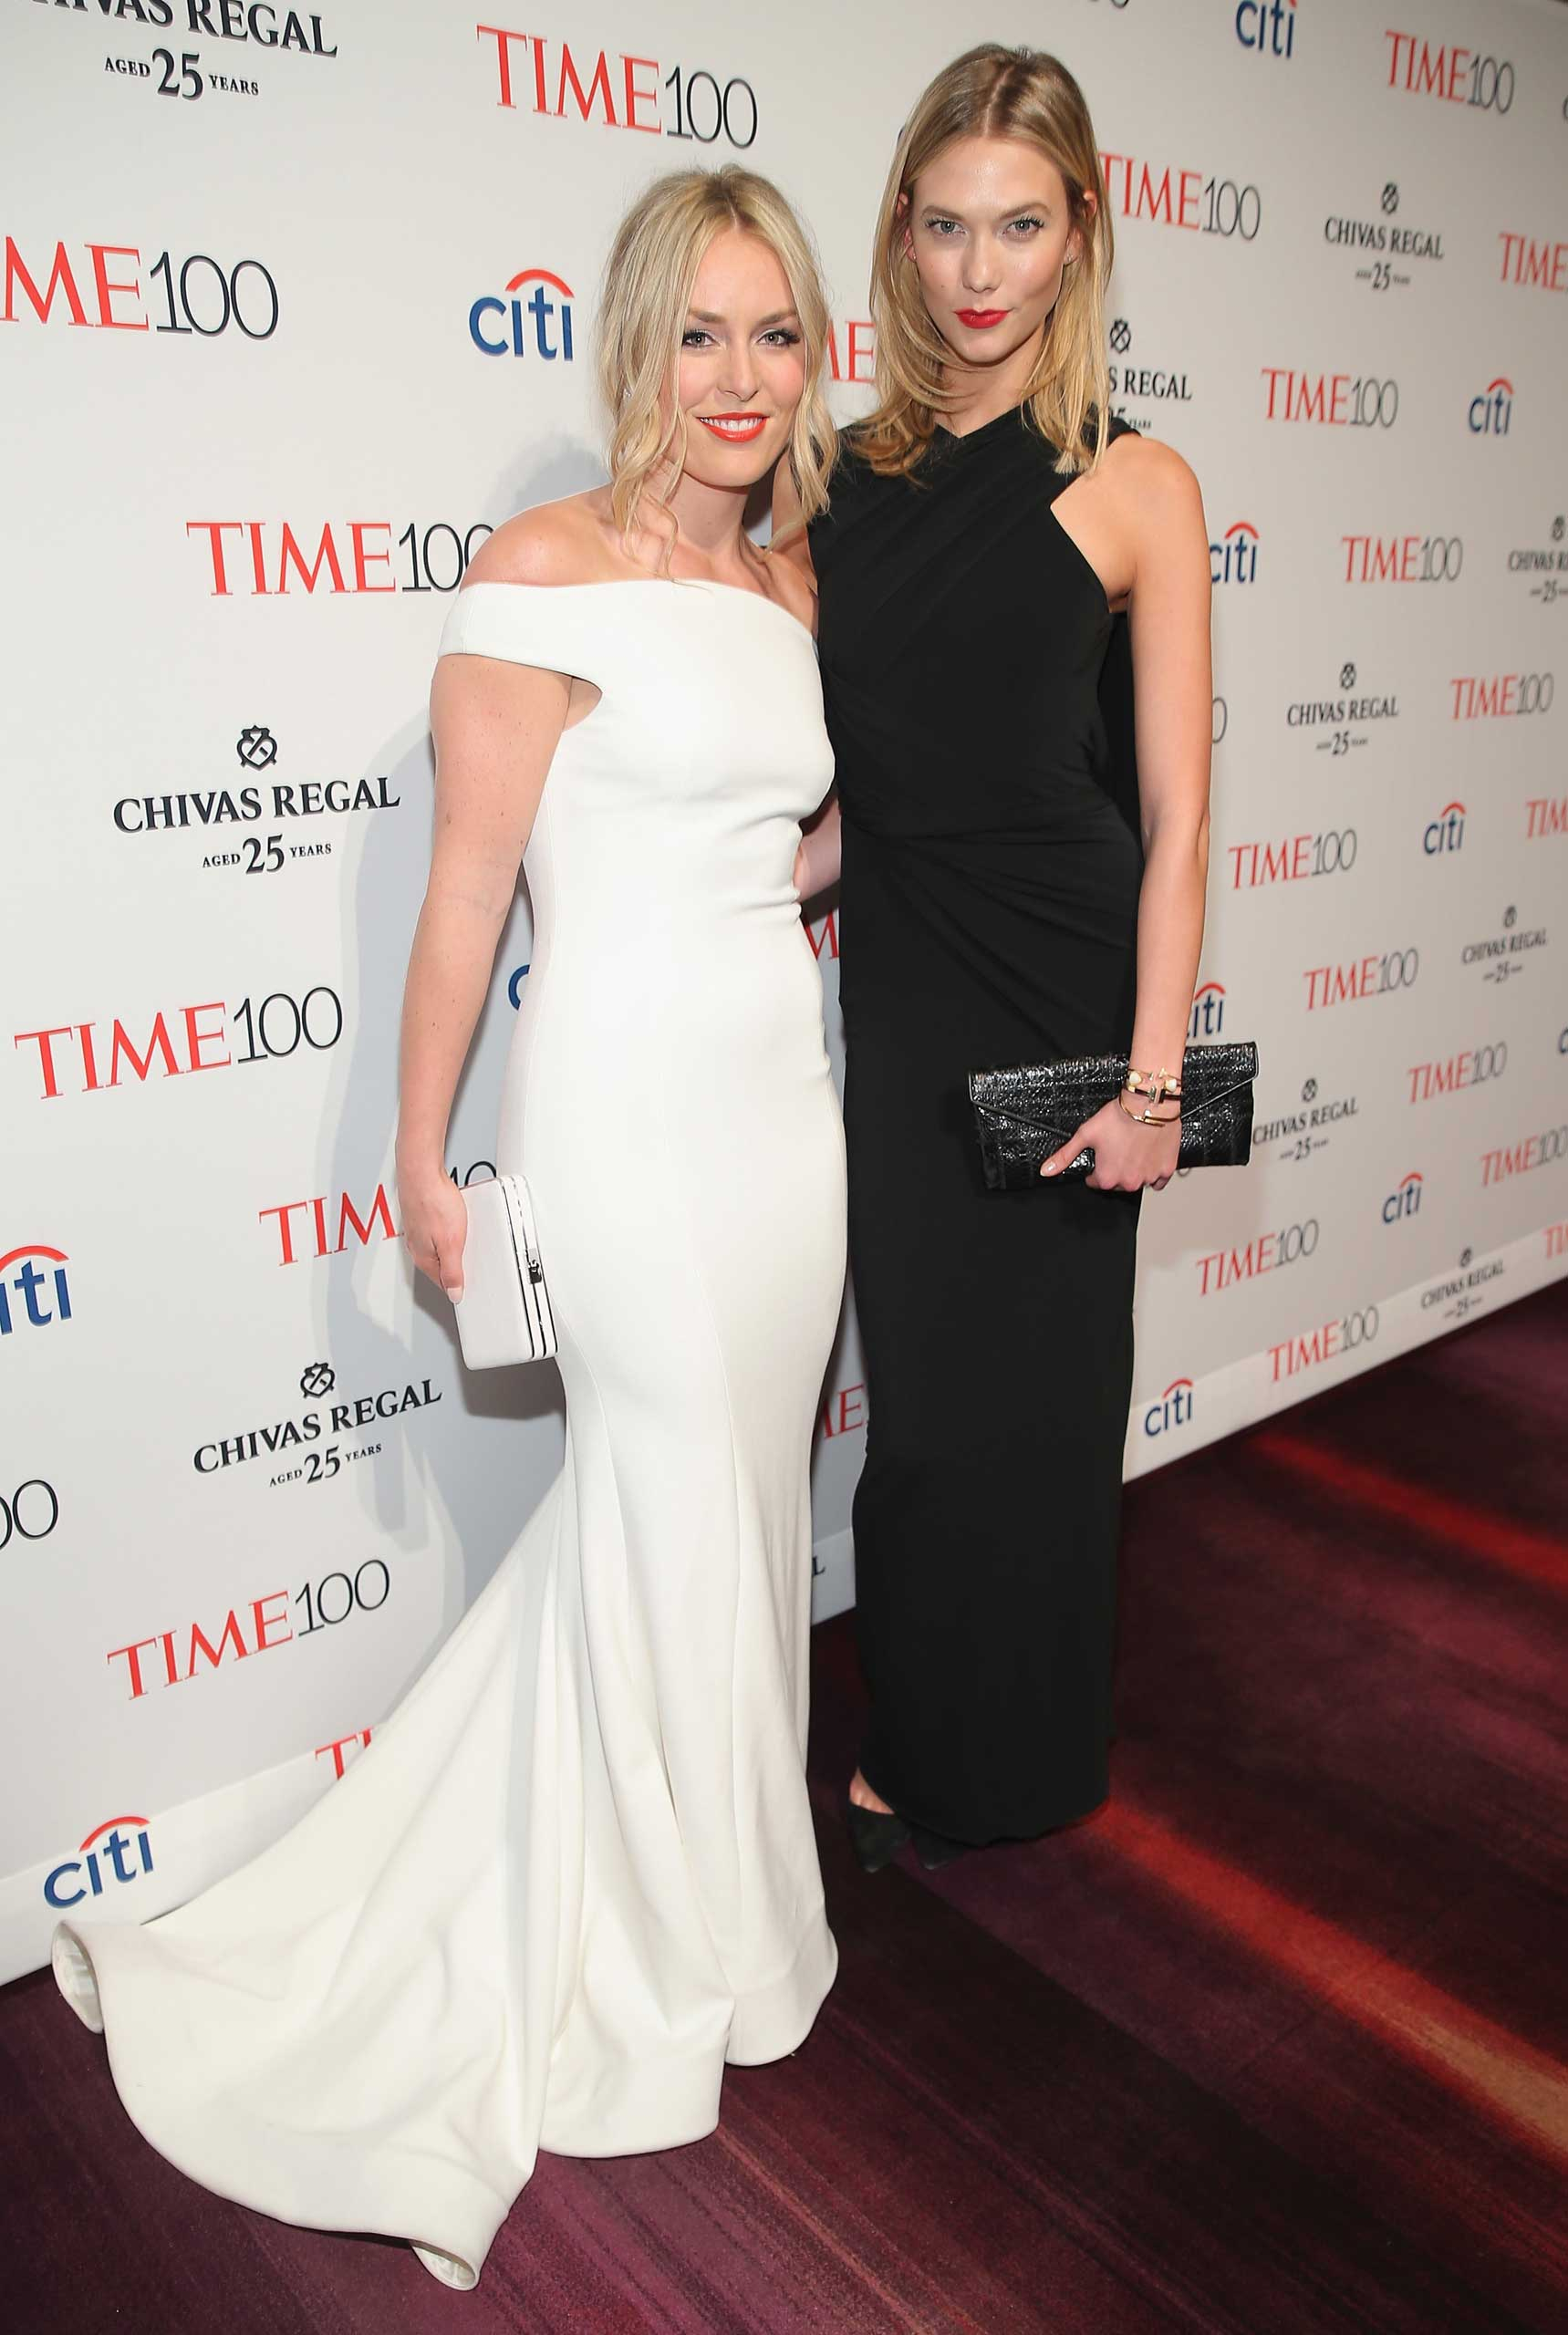 Lindsey Vonn and Karlie Kloss attend the TIME 100 Gala at Jazz at Lincoln Center in New York City on April 21, 2015.